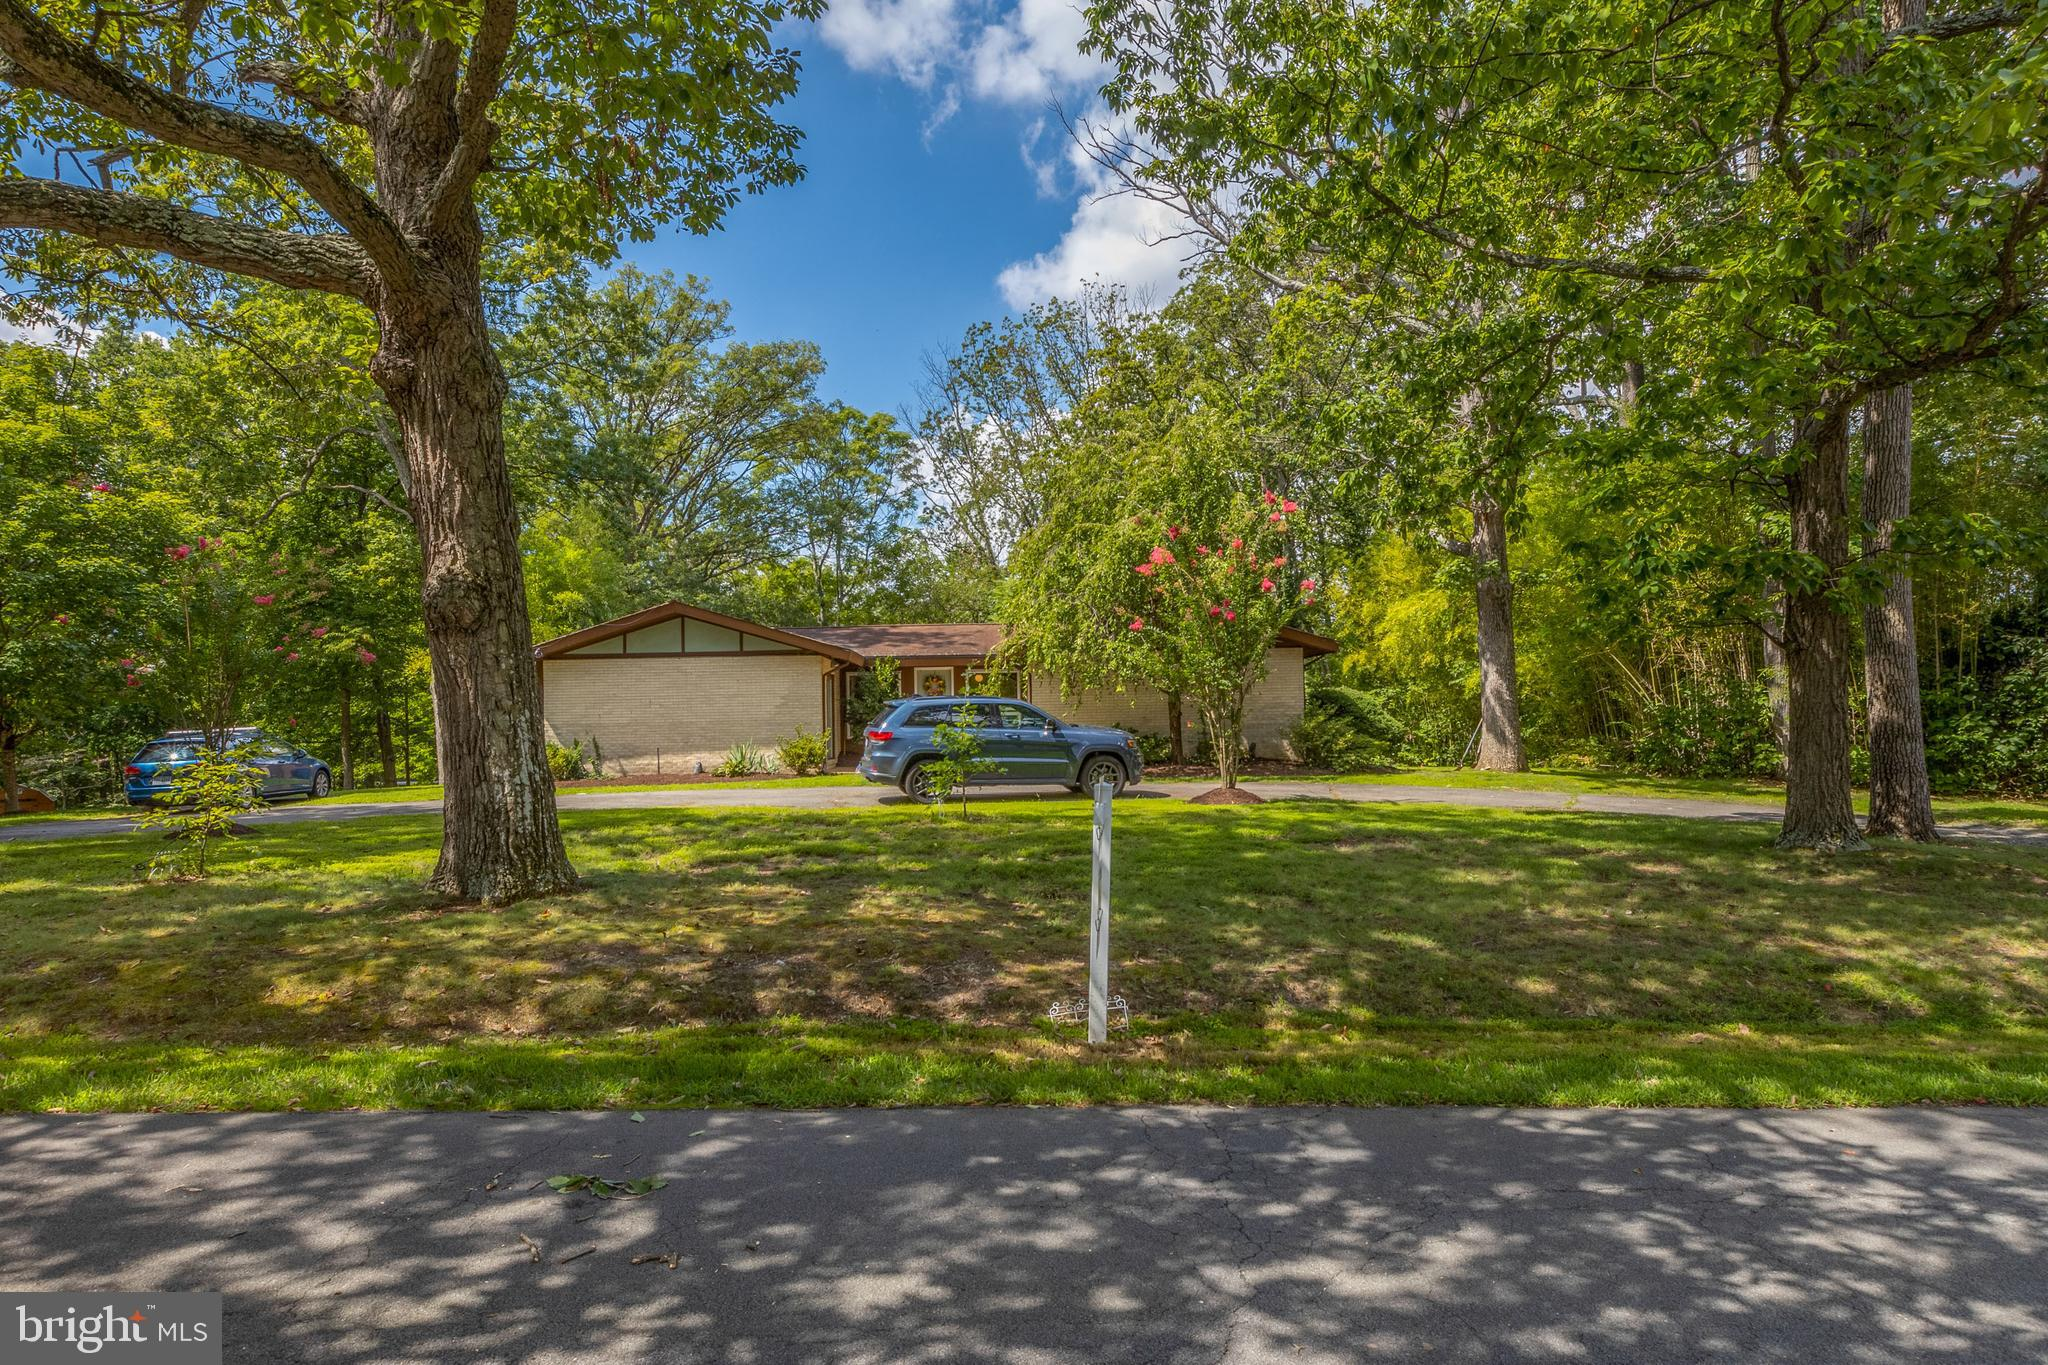 1 STORY/2 LEVEL SFH IN ESTABLISHED HERNDON NEIGHBORHOOD*2 LARGE LOTS OVER 1/2 ACRE*  *PARTIALLY FENC